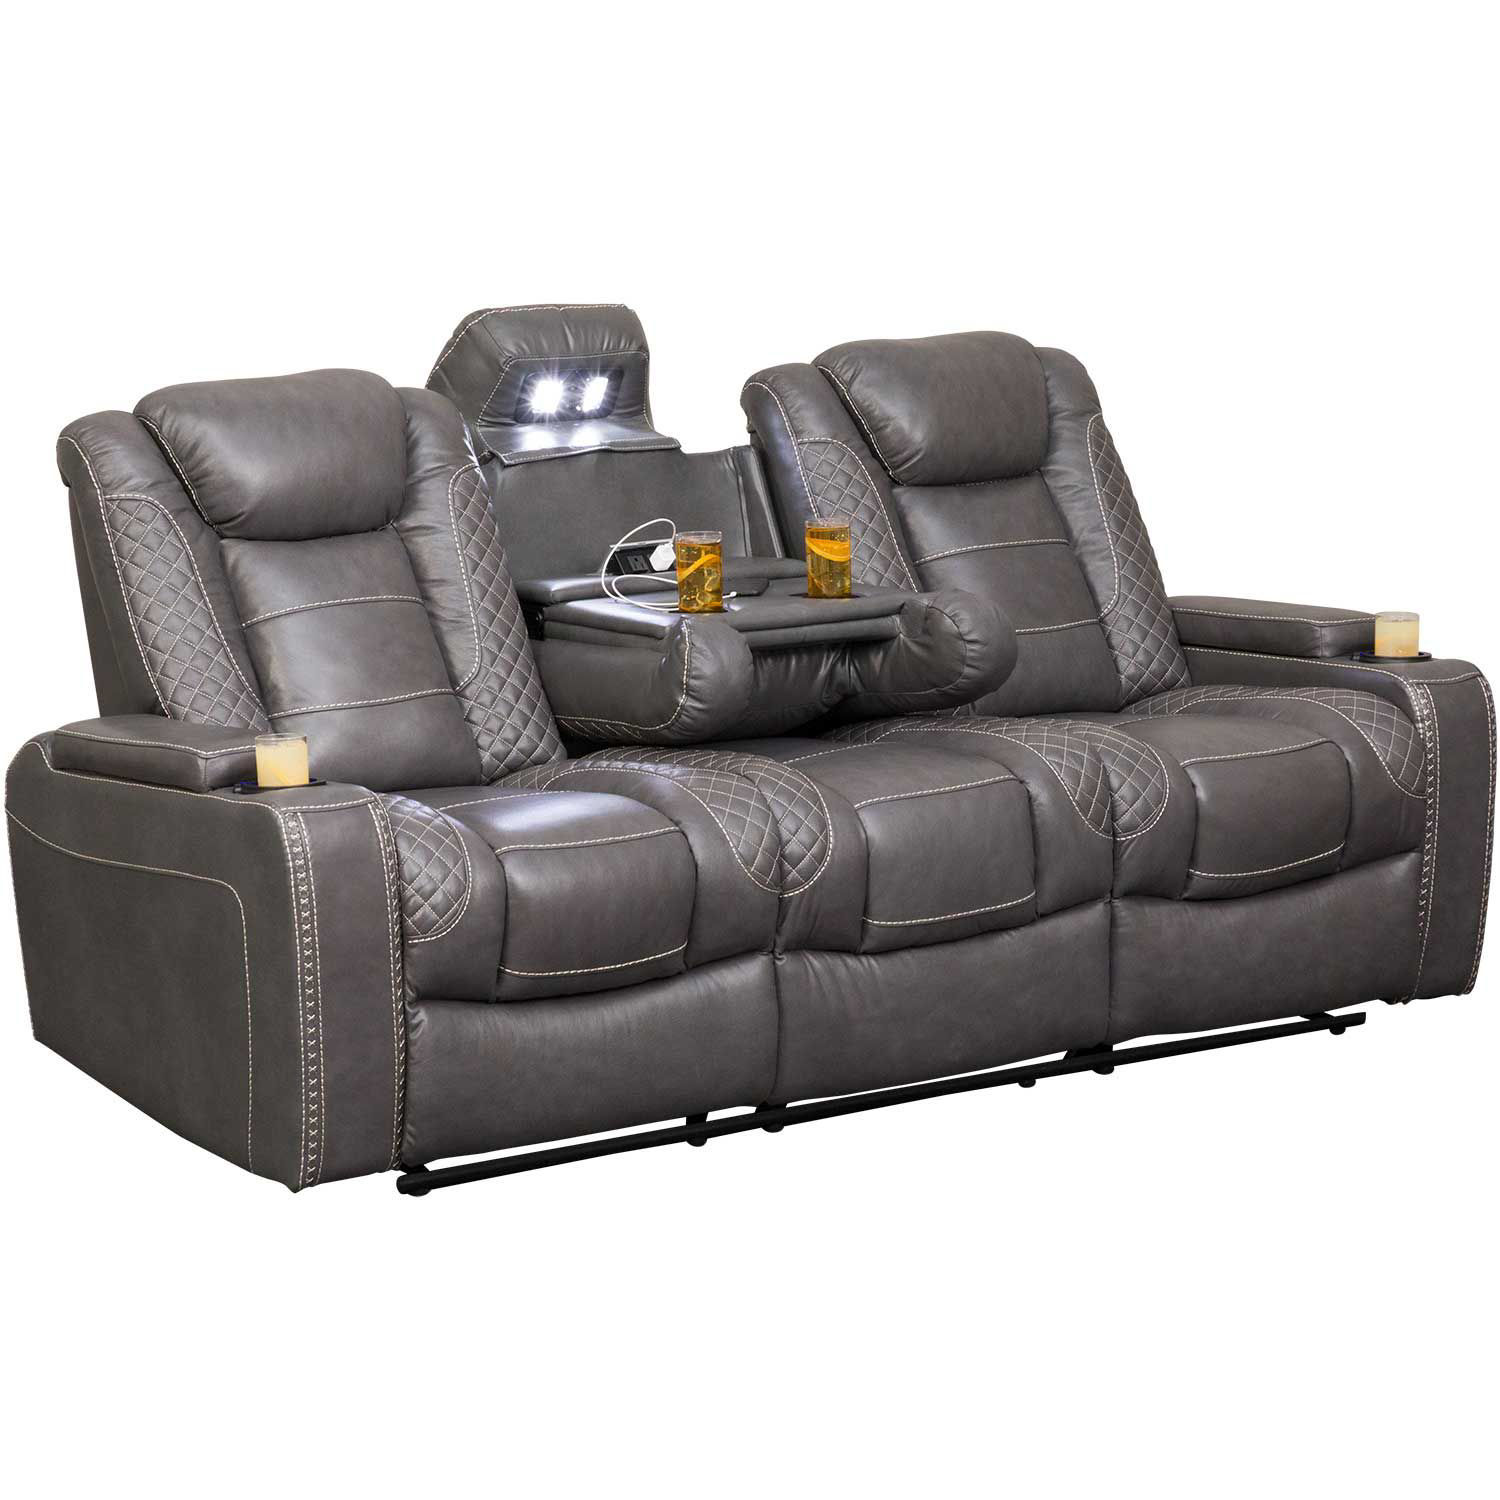 Picture of Orion Power Reclining Sofa with Adjustable Headrest